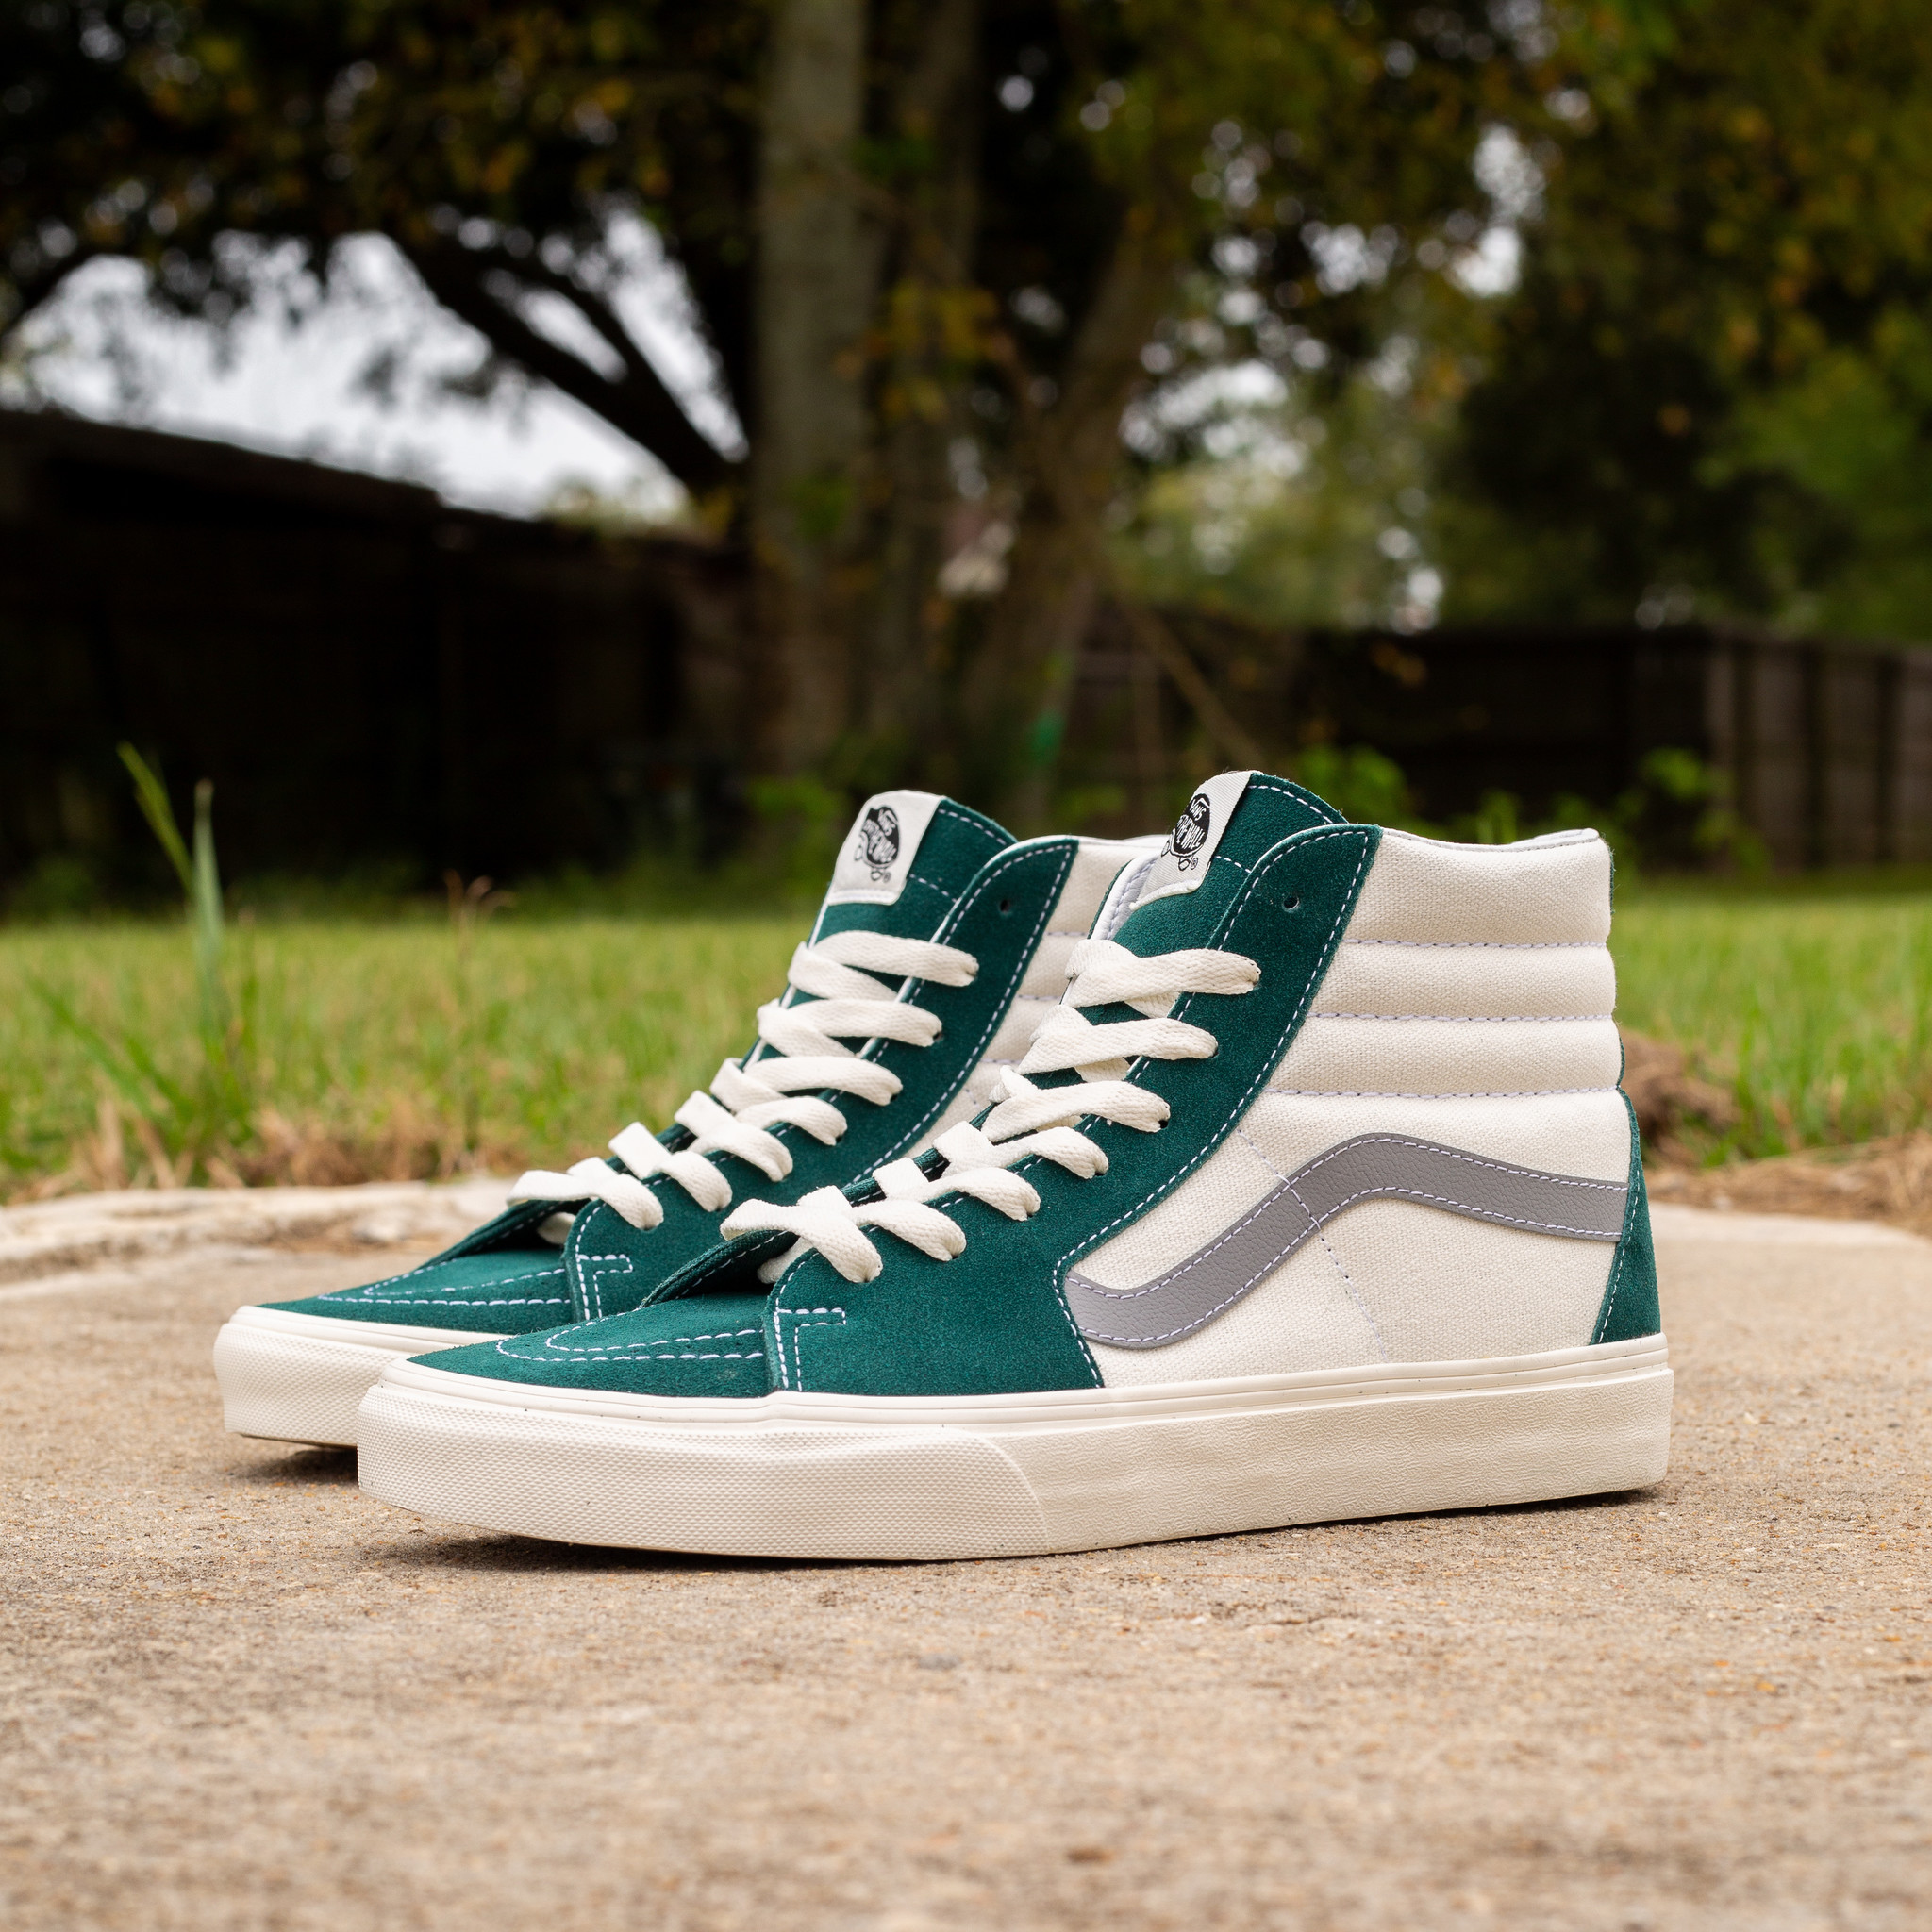 Vans Sk8 Hi Retro Sport Sail/Forest Green